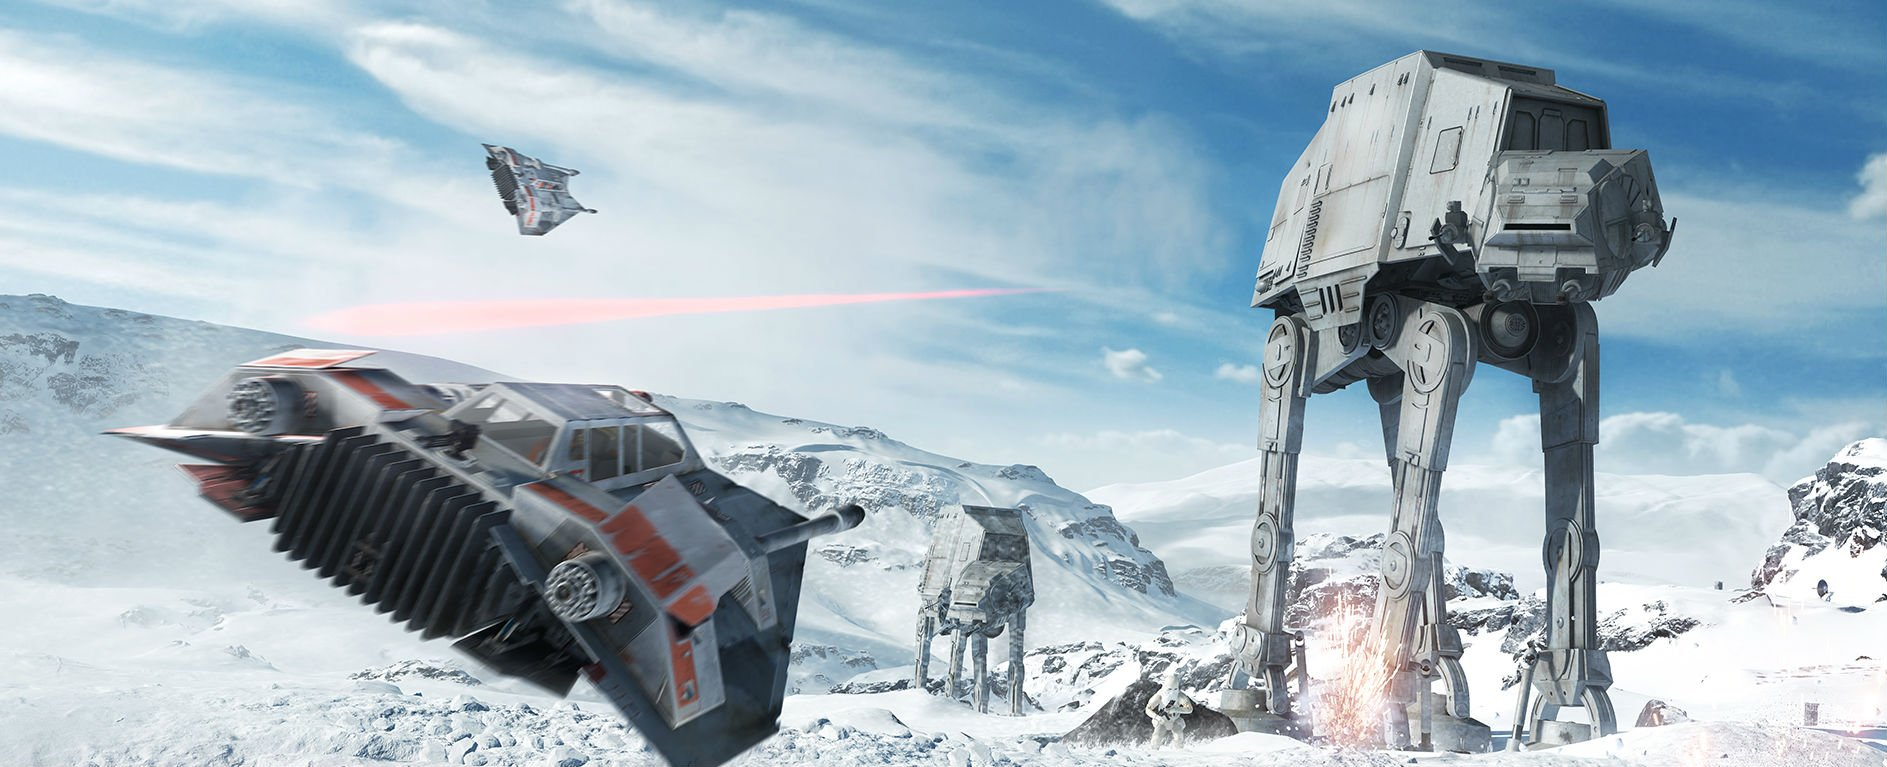 Star Wars Battlefront photo